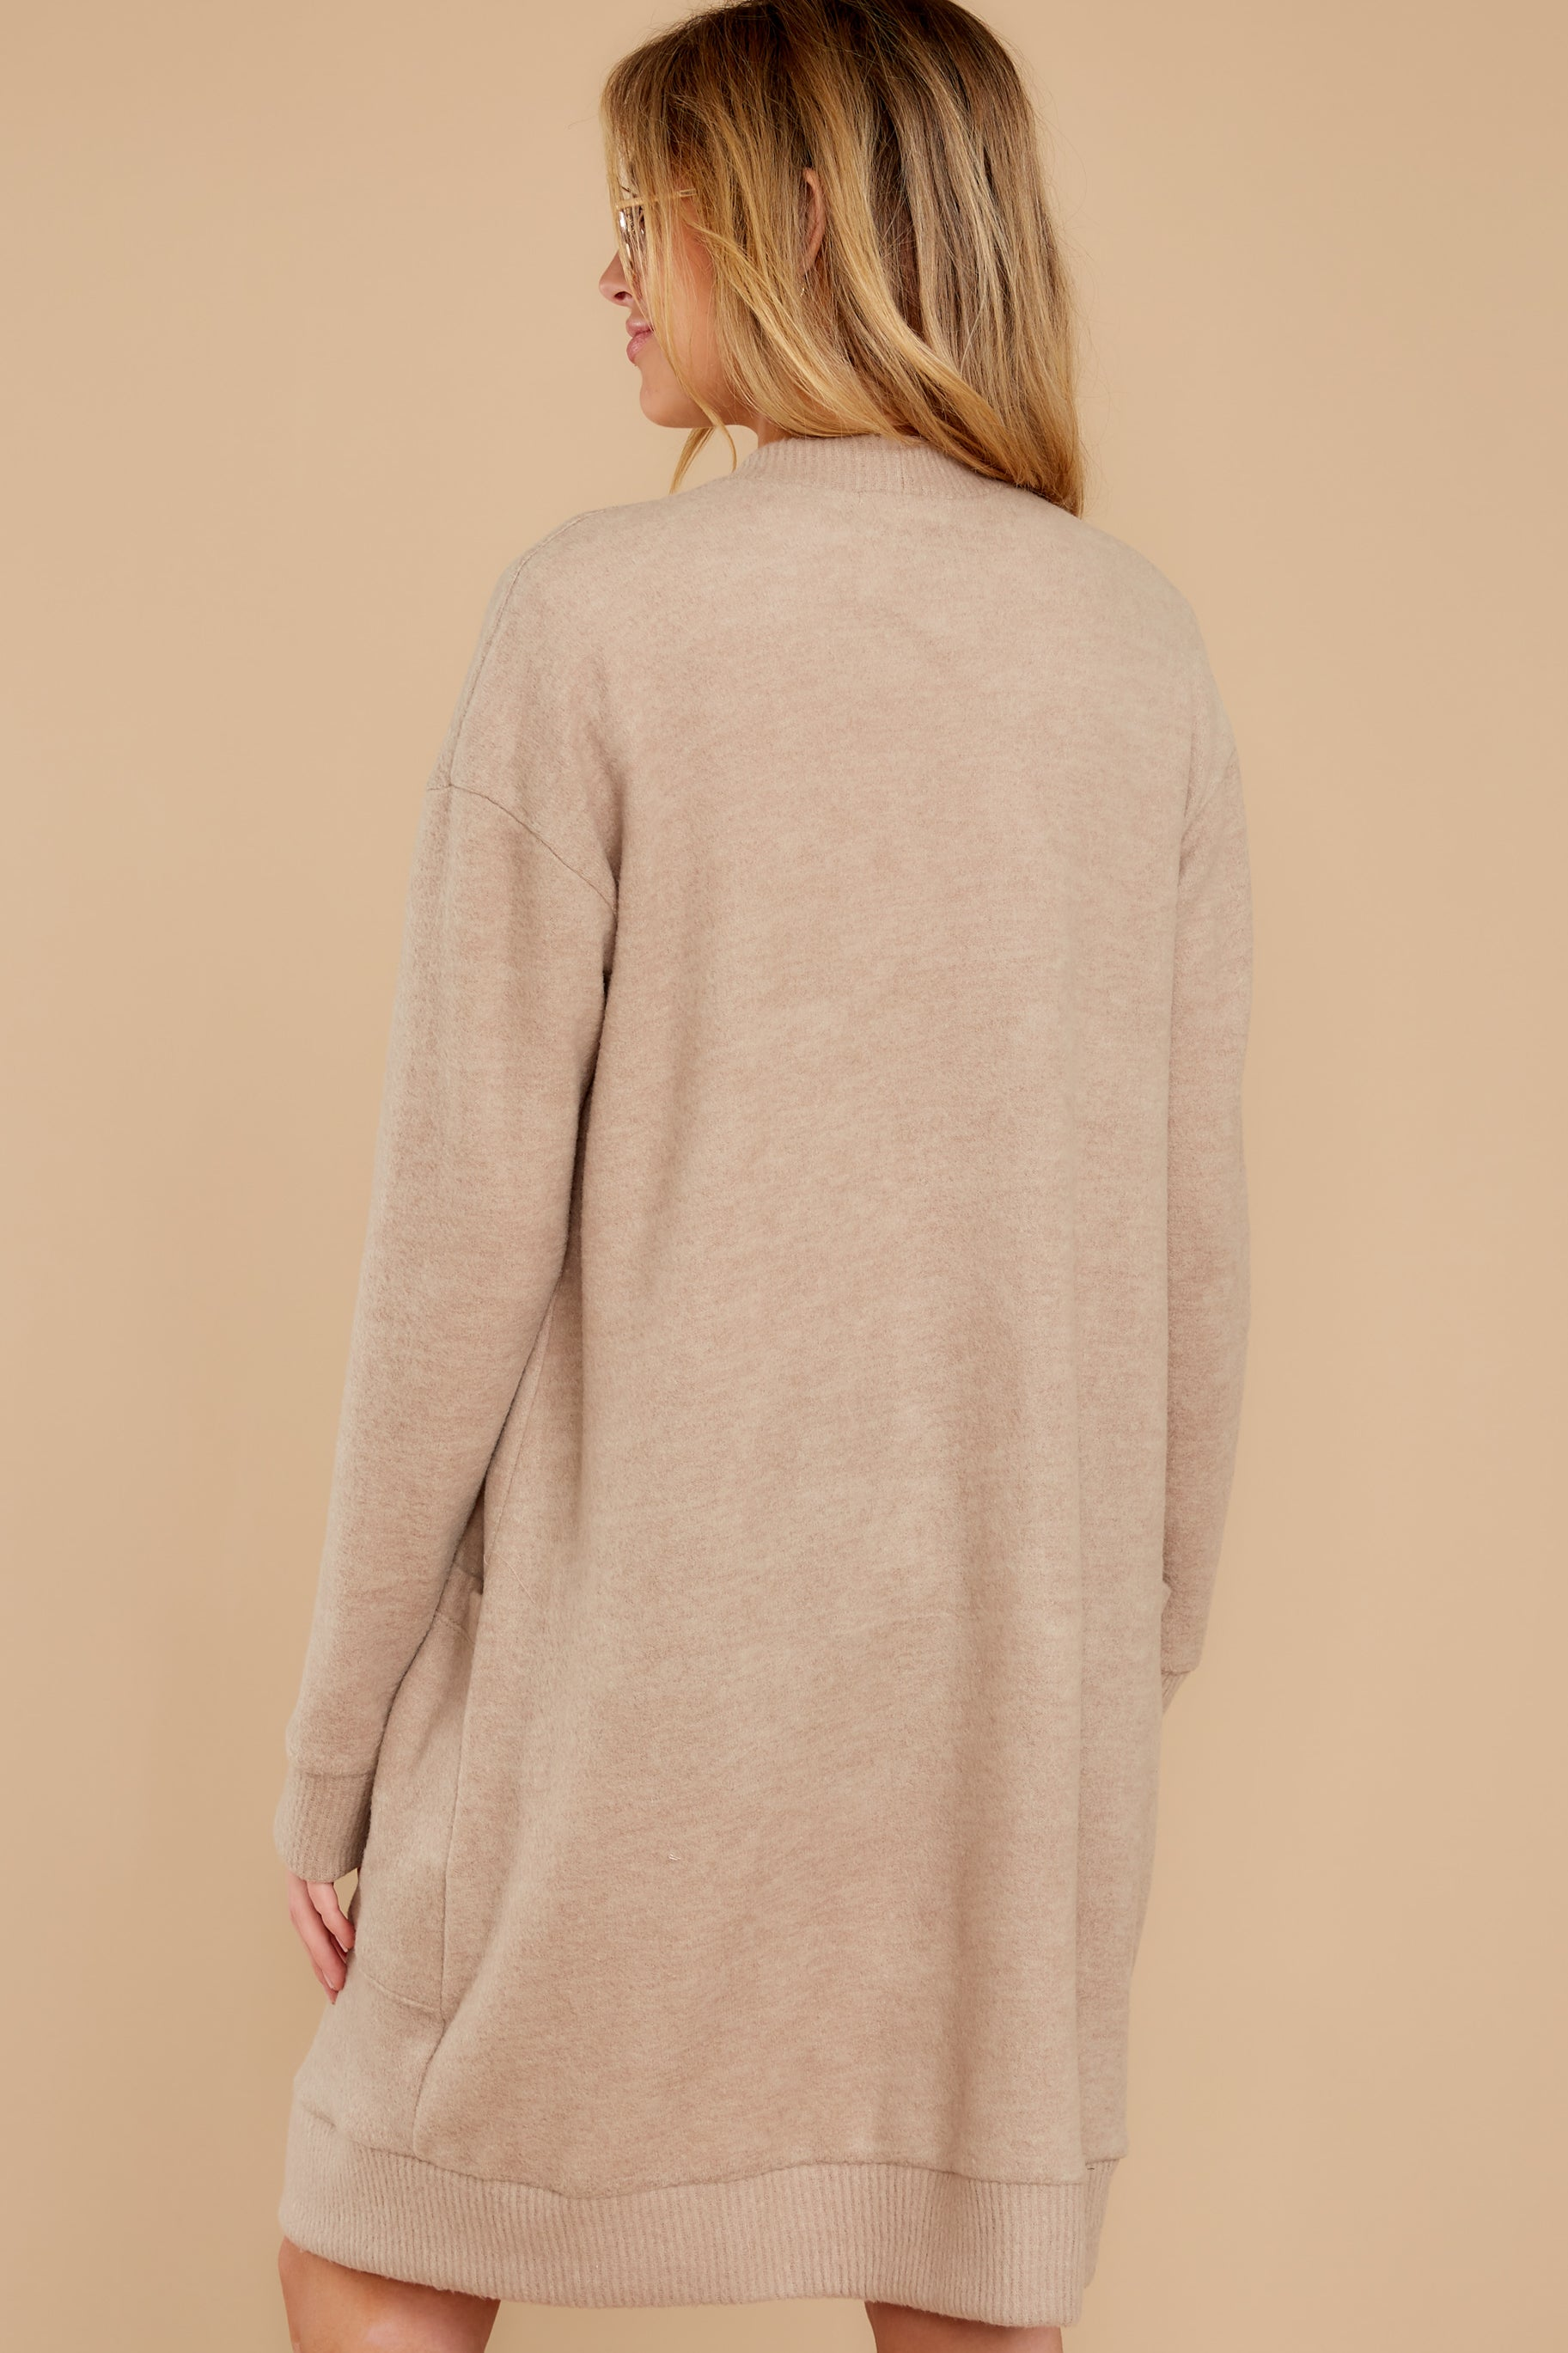 9 All I Really Want Taupe Cardigan at reddress.com